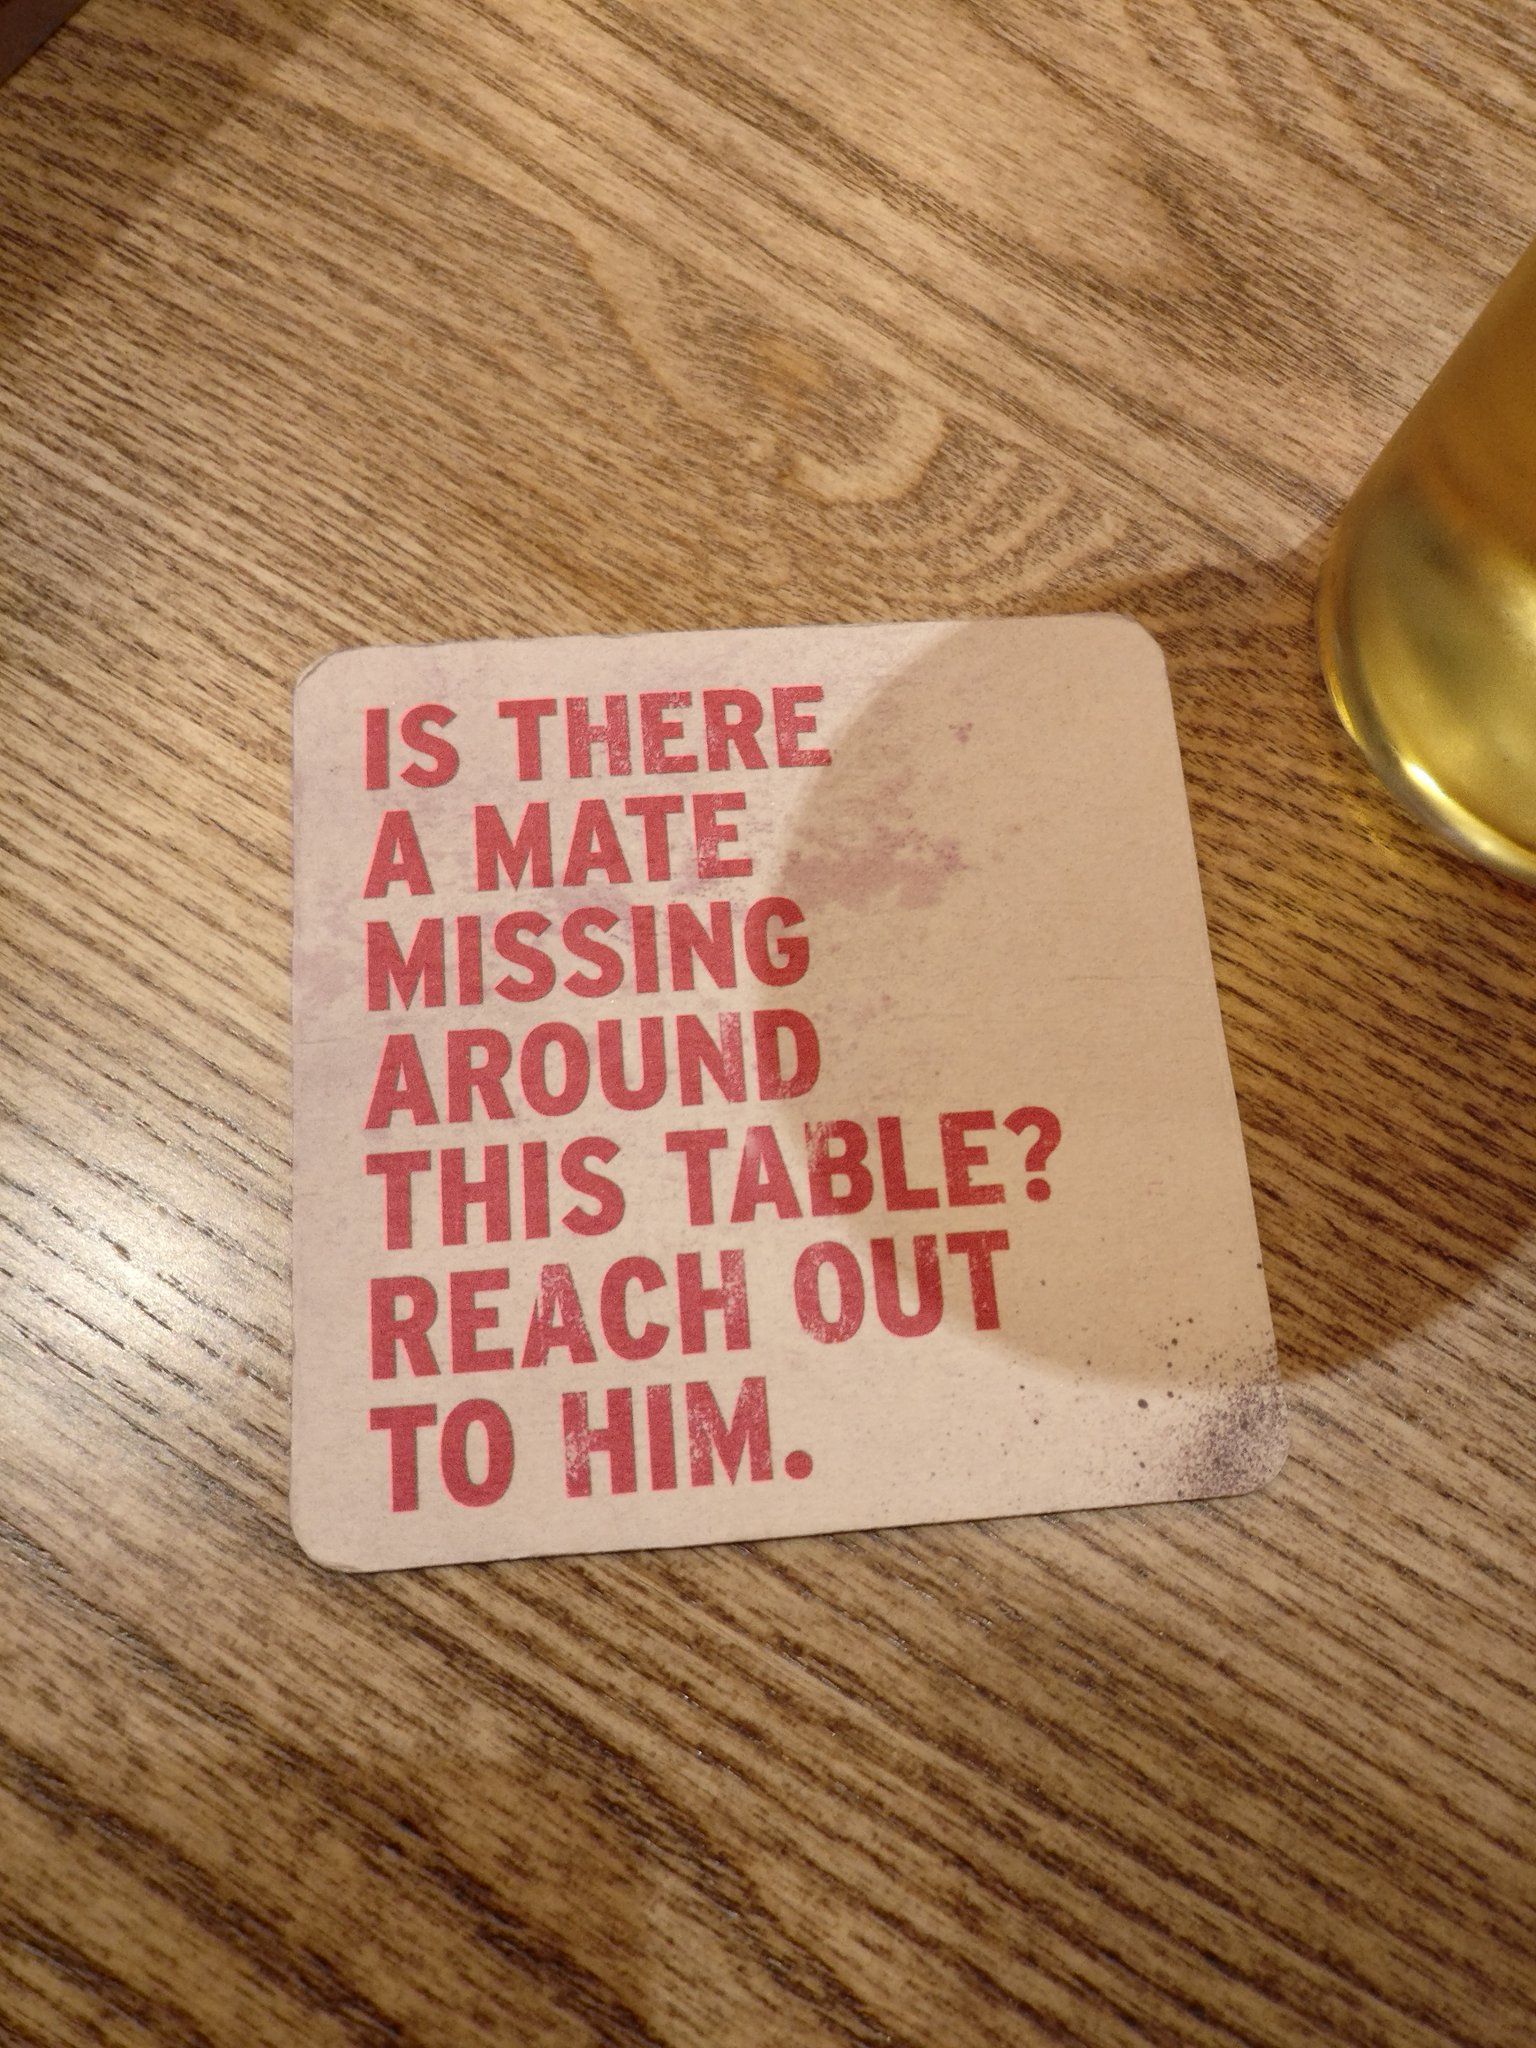 These beer mats are SO needed. Suicide is the leading cause of death for men under 49, killing three times as many British men as women. It's time to talk about men's mental health!! https://t.co/G43g56whyY